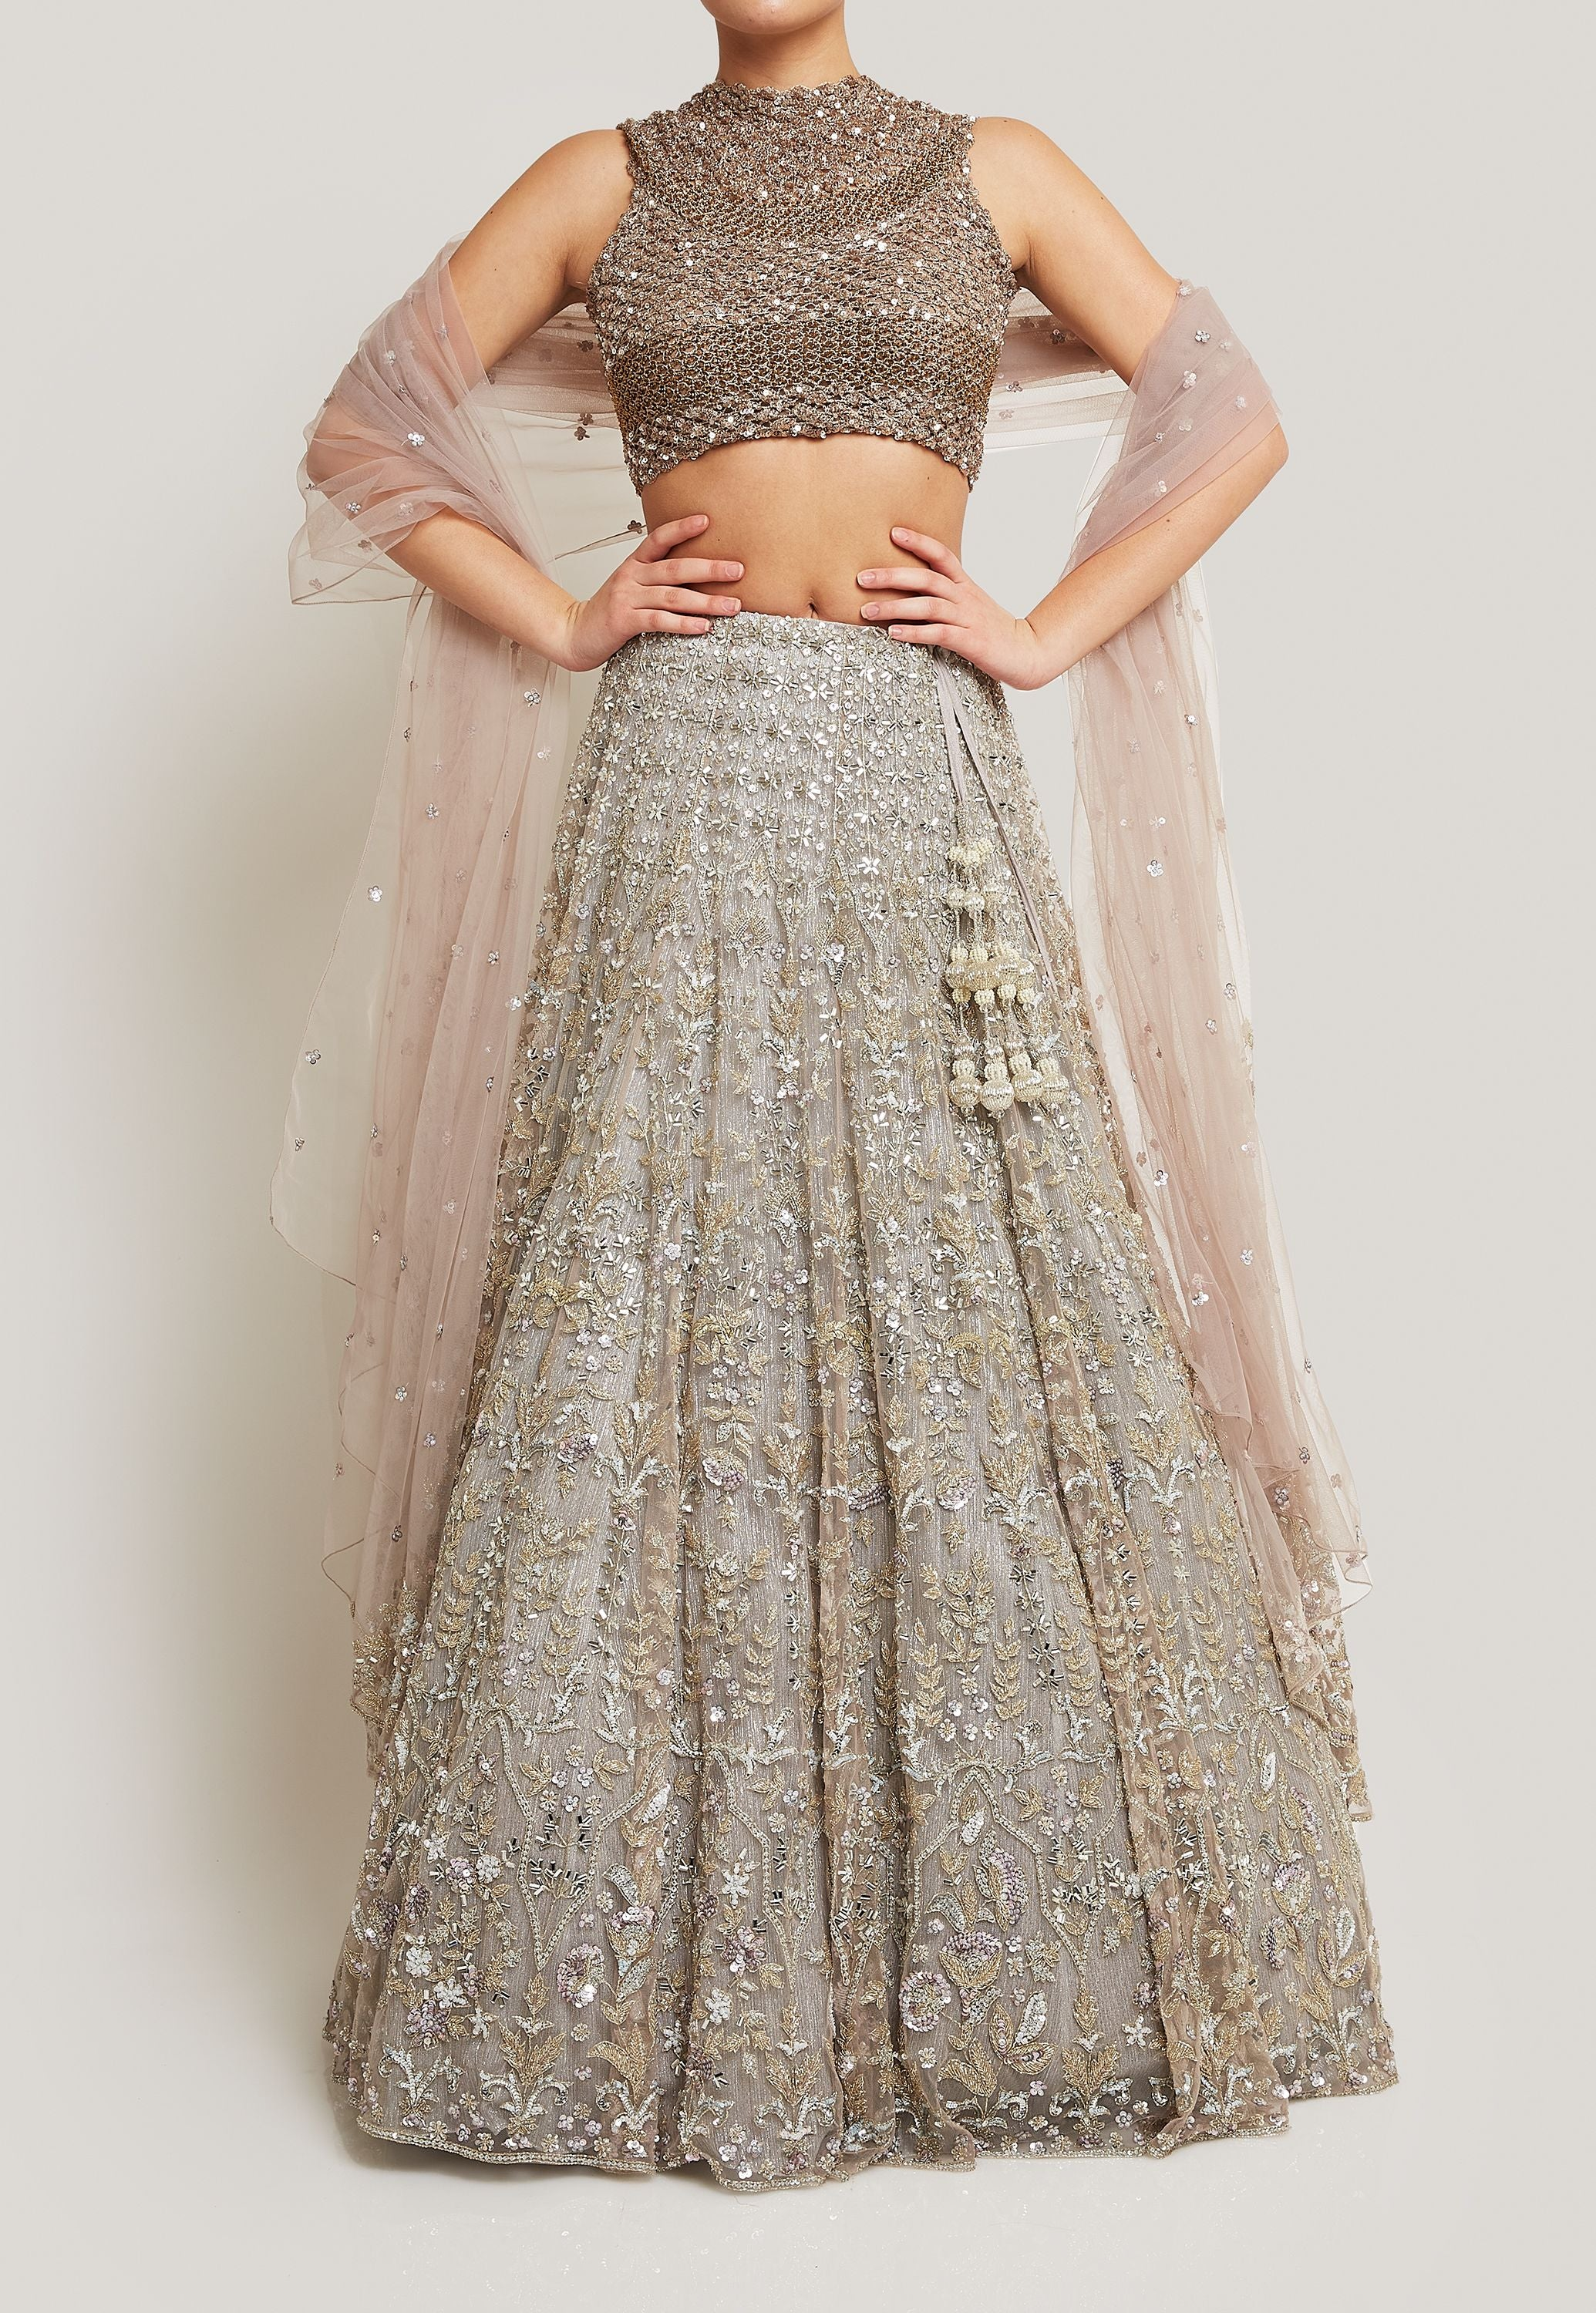 ORNATE AND SPARKLY SILVER BRIDAL LEHENGA